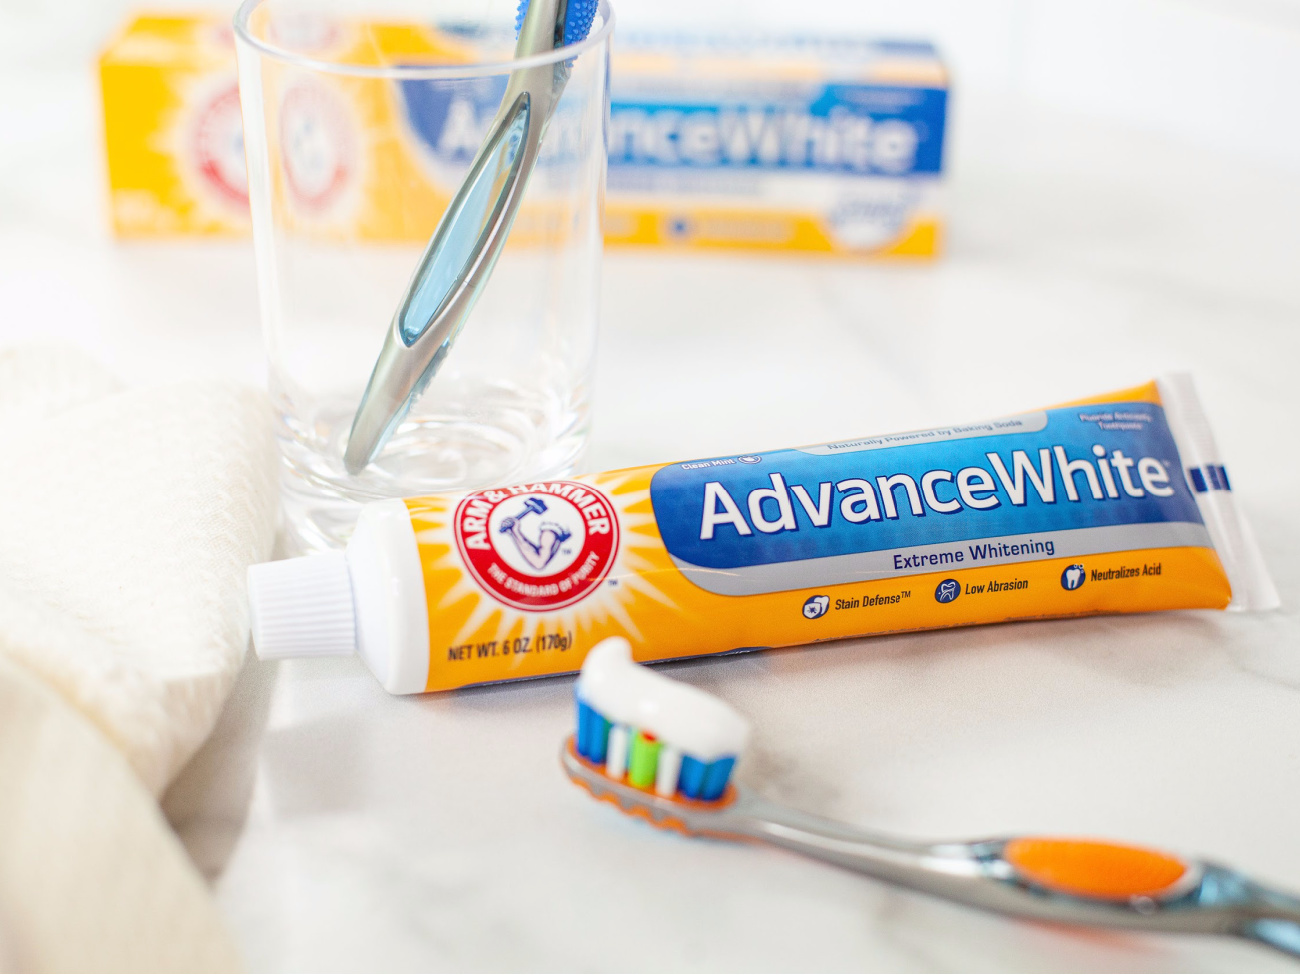 Arm & Hammer Toothpaste Just $1.45 At Publix on I Heart Publix